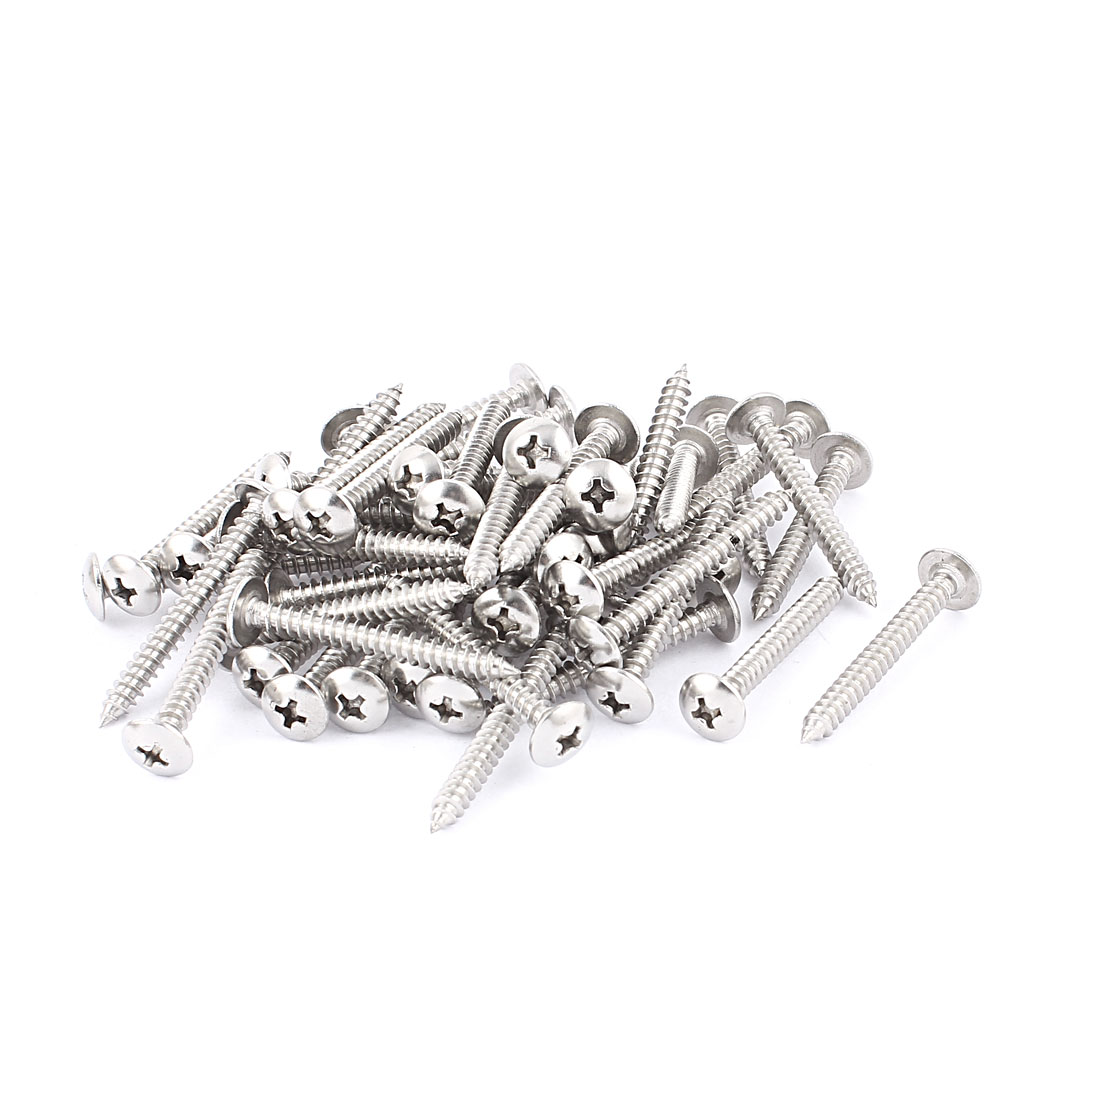 3.9 x 37mm Stainless Steel Phillips Truss Head Self Tapping Screw Fasteners Silver Tone 50 Pcs